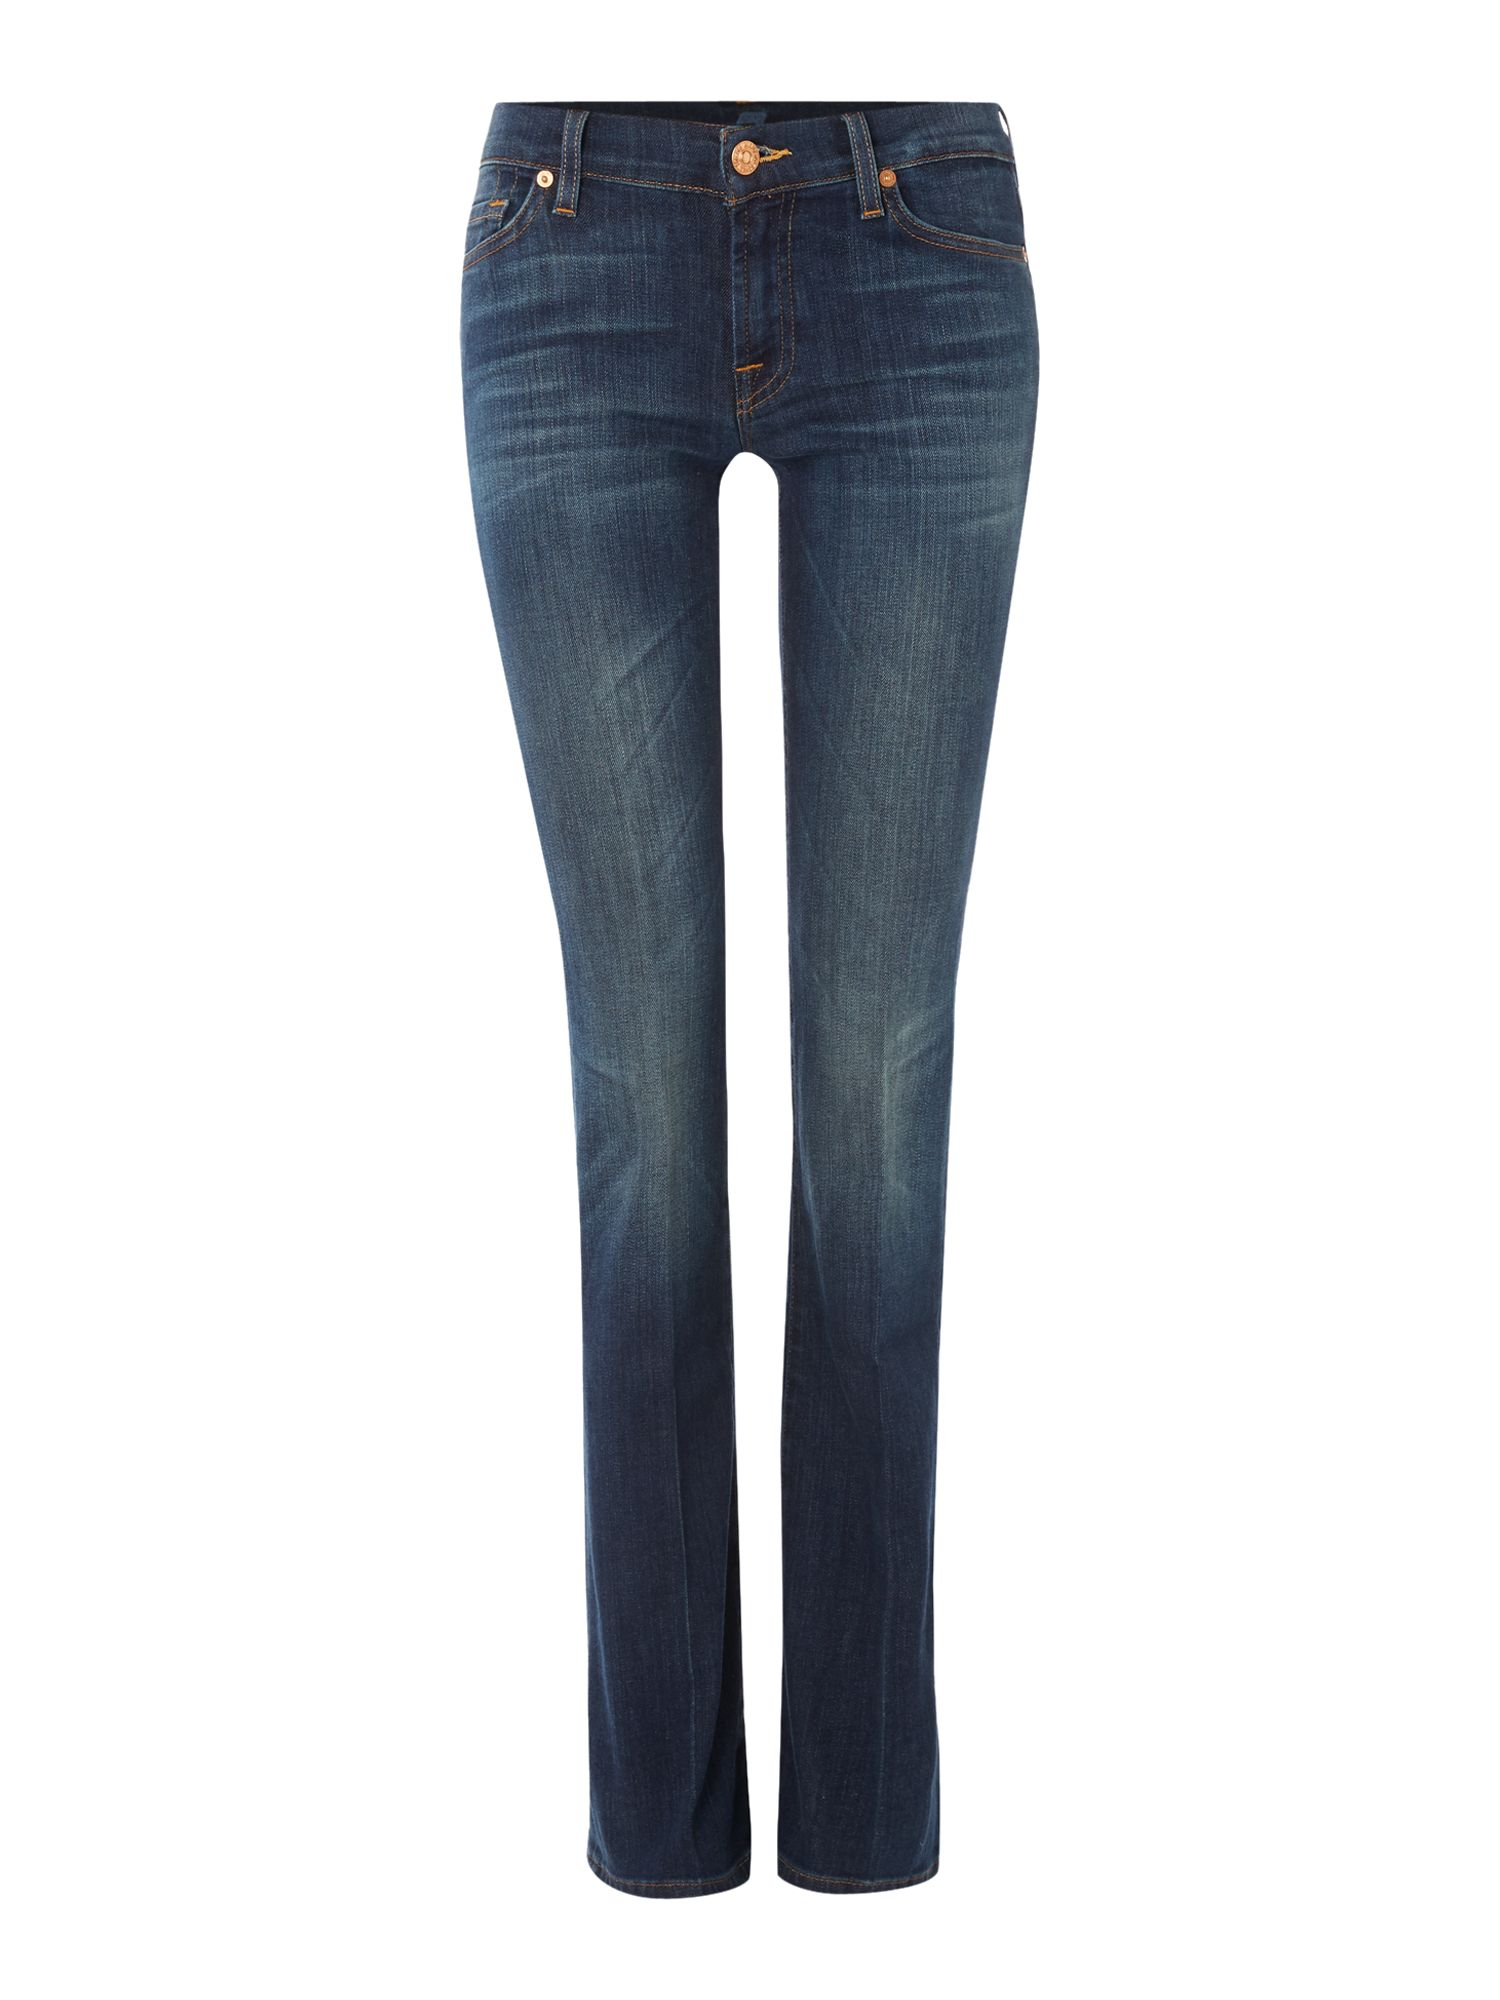 7 For All Mankind 7 For All Mankind Bootcut jeans in Brooklyn Dark, Denim Mid Wash